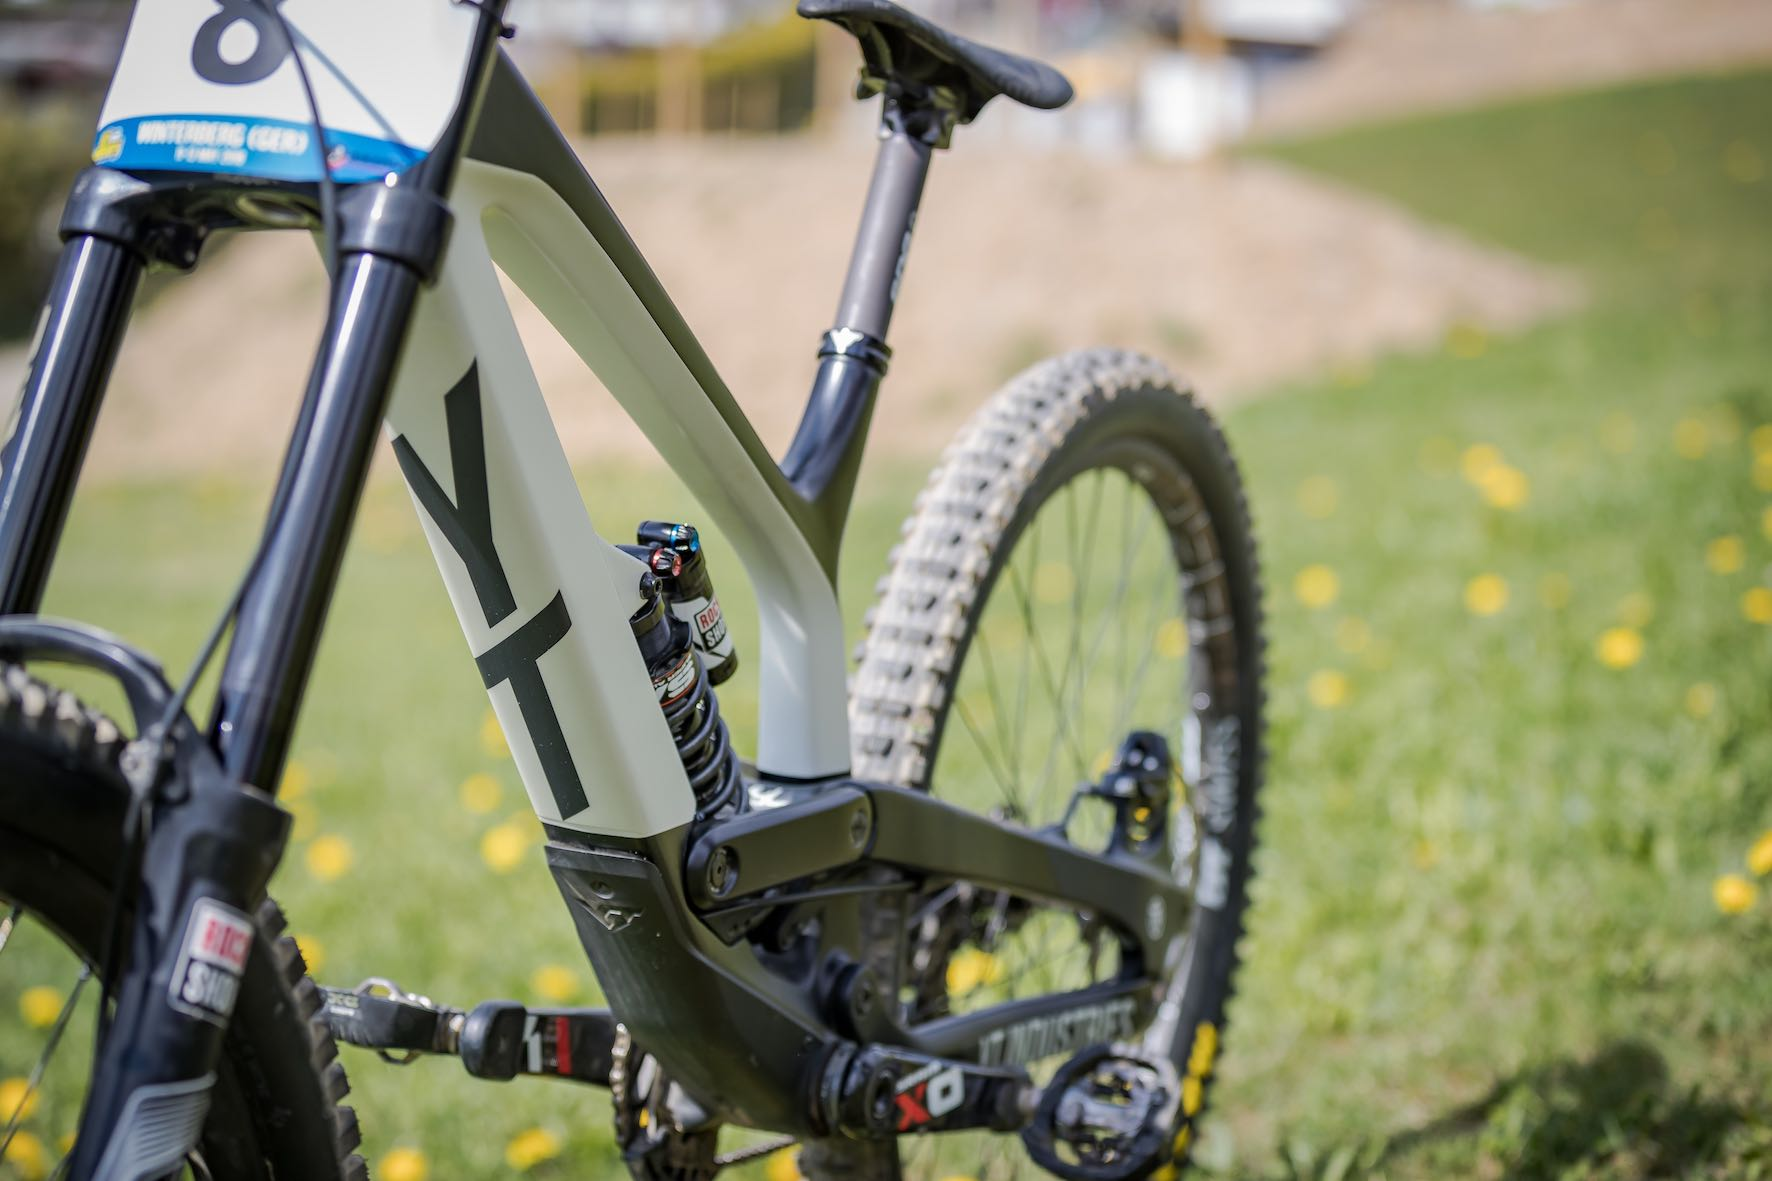 Meet the new 2018 YT Industries TUES Downhill MTB bike